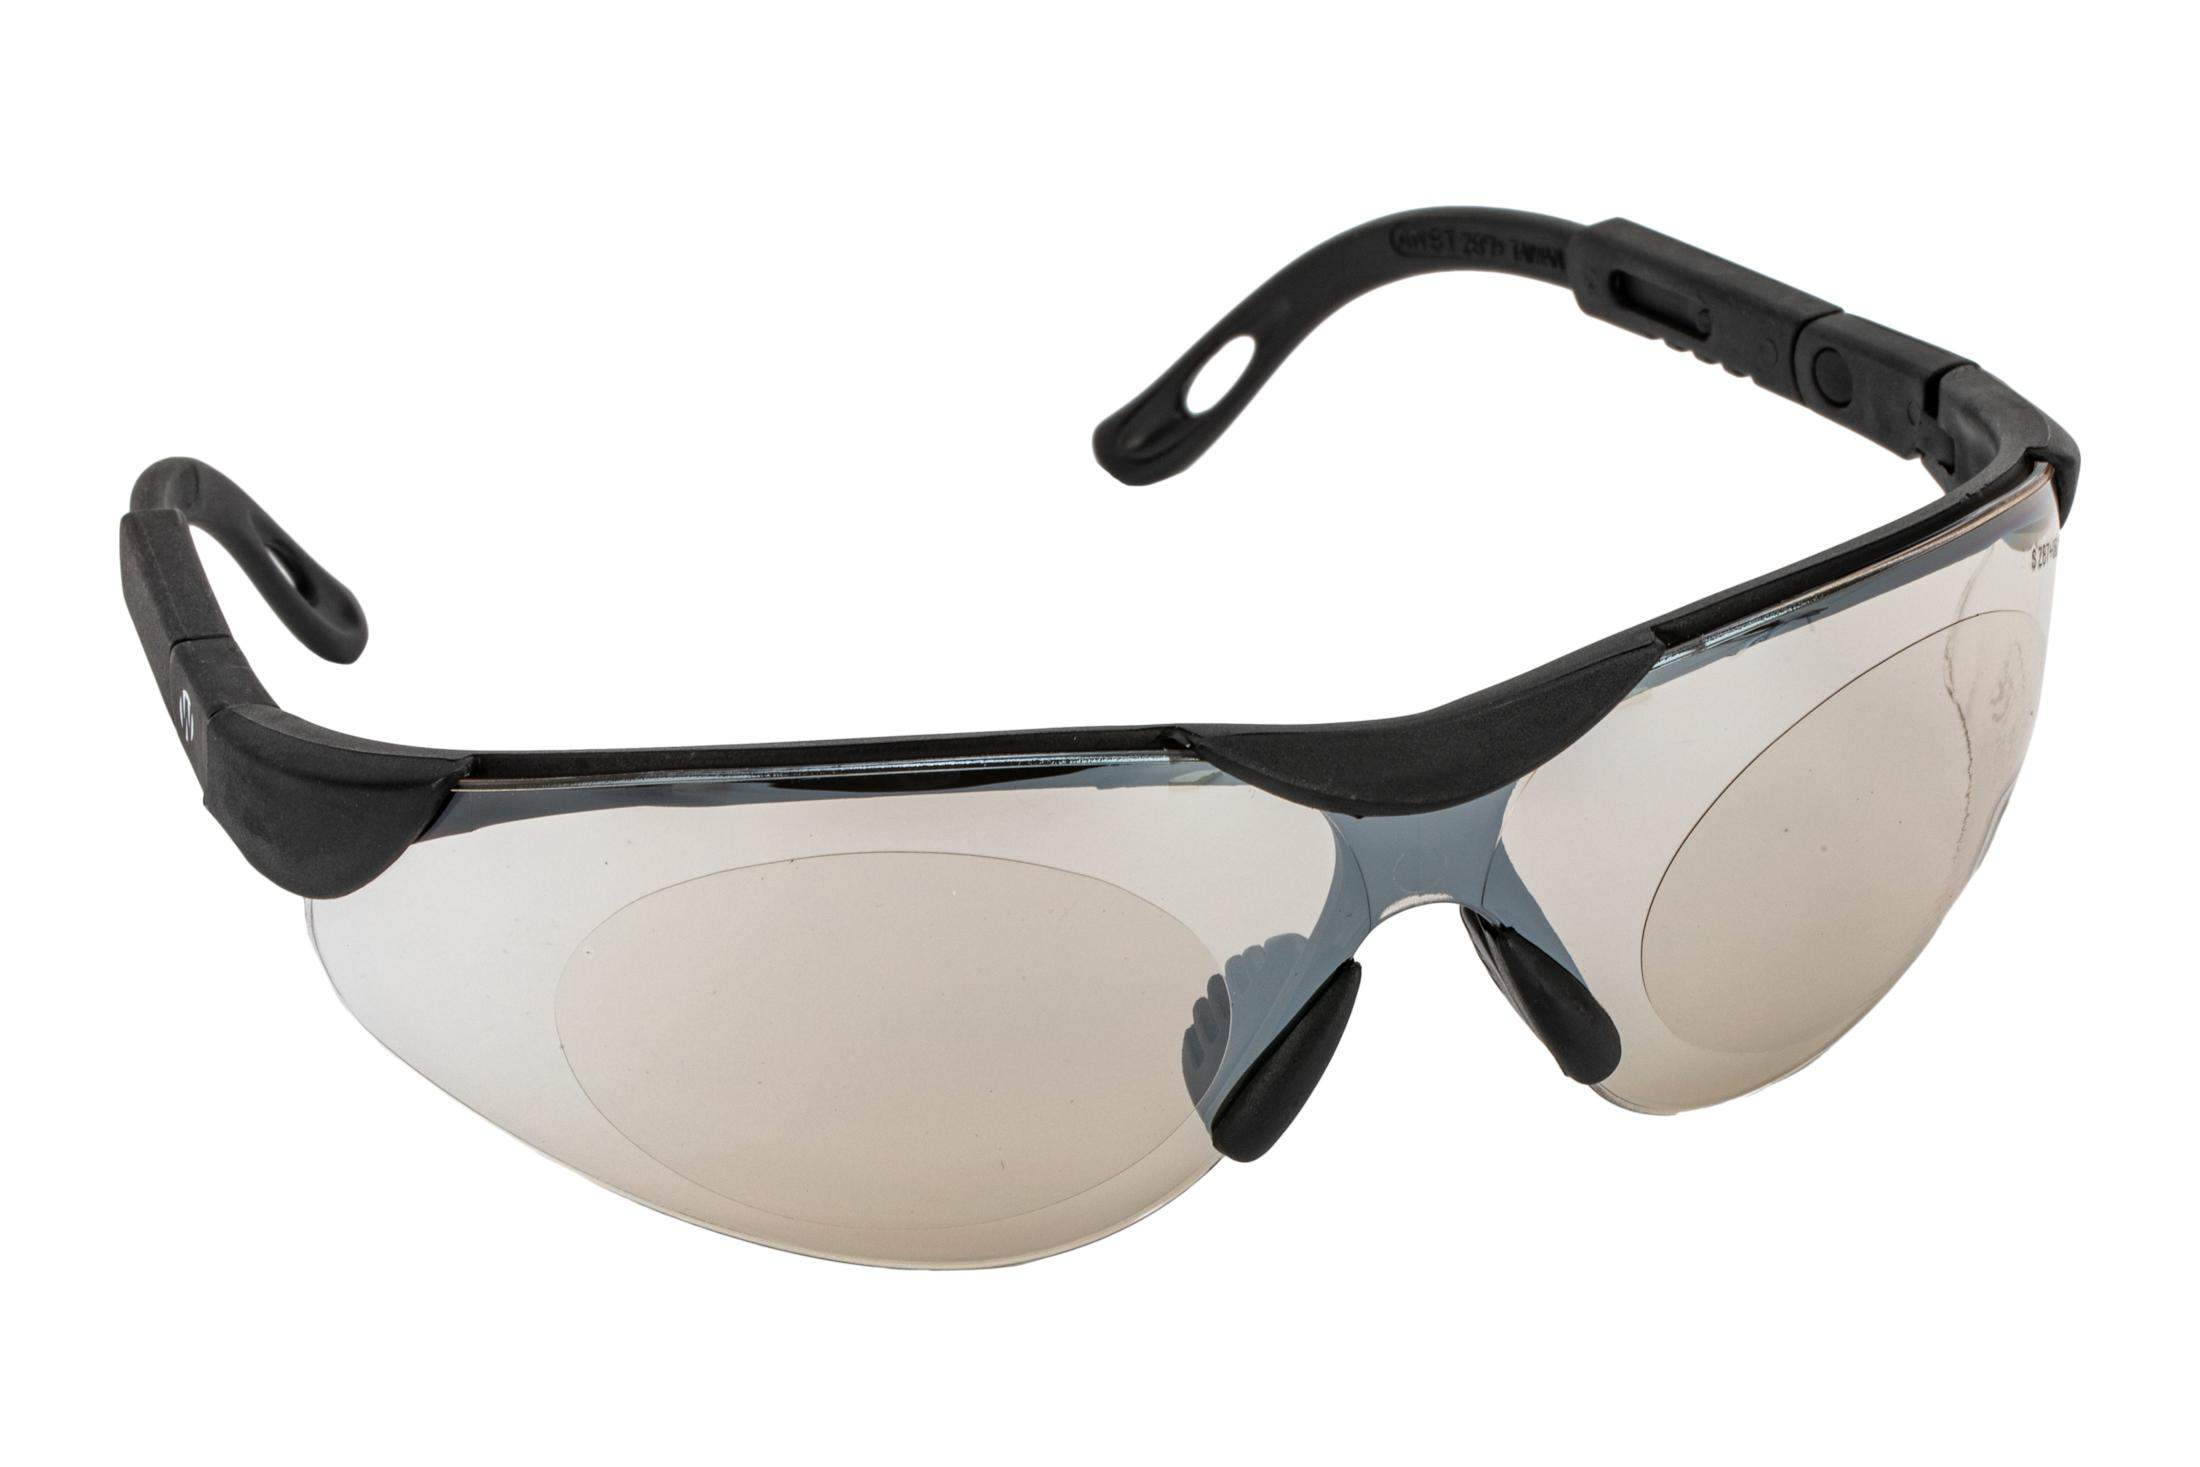 The Walkers Elite Sport Safety Glasses feature polycarbonate ice blue impact resistant lenses